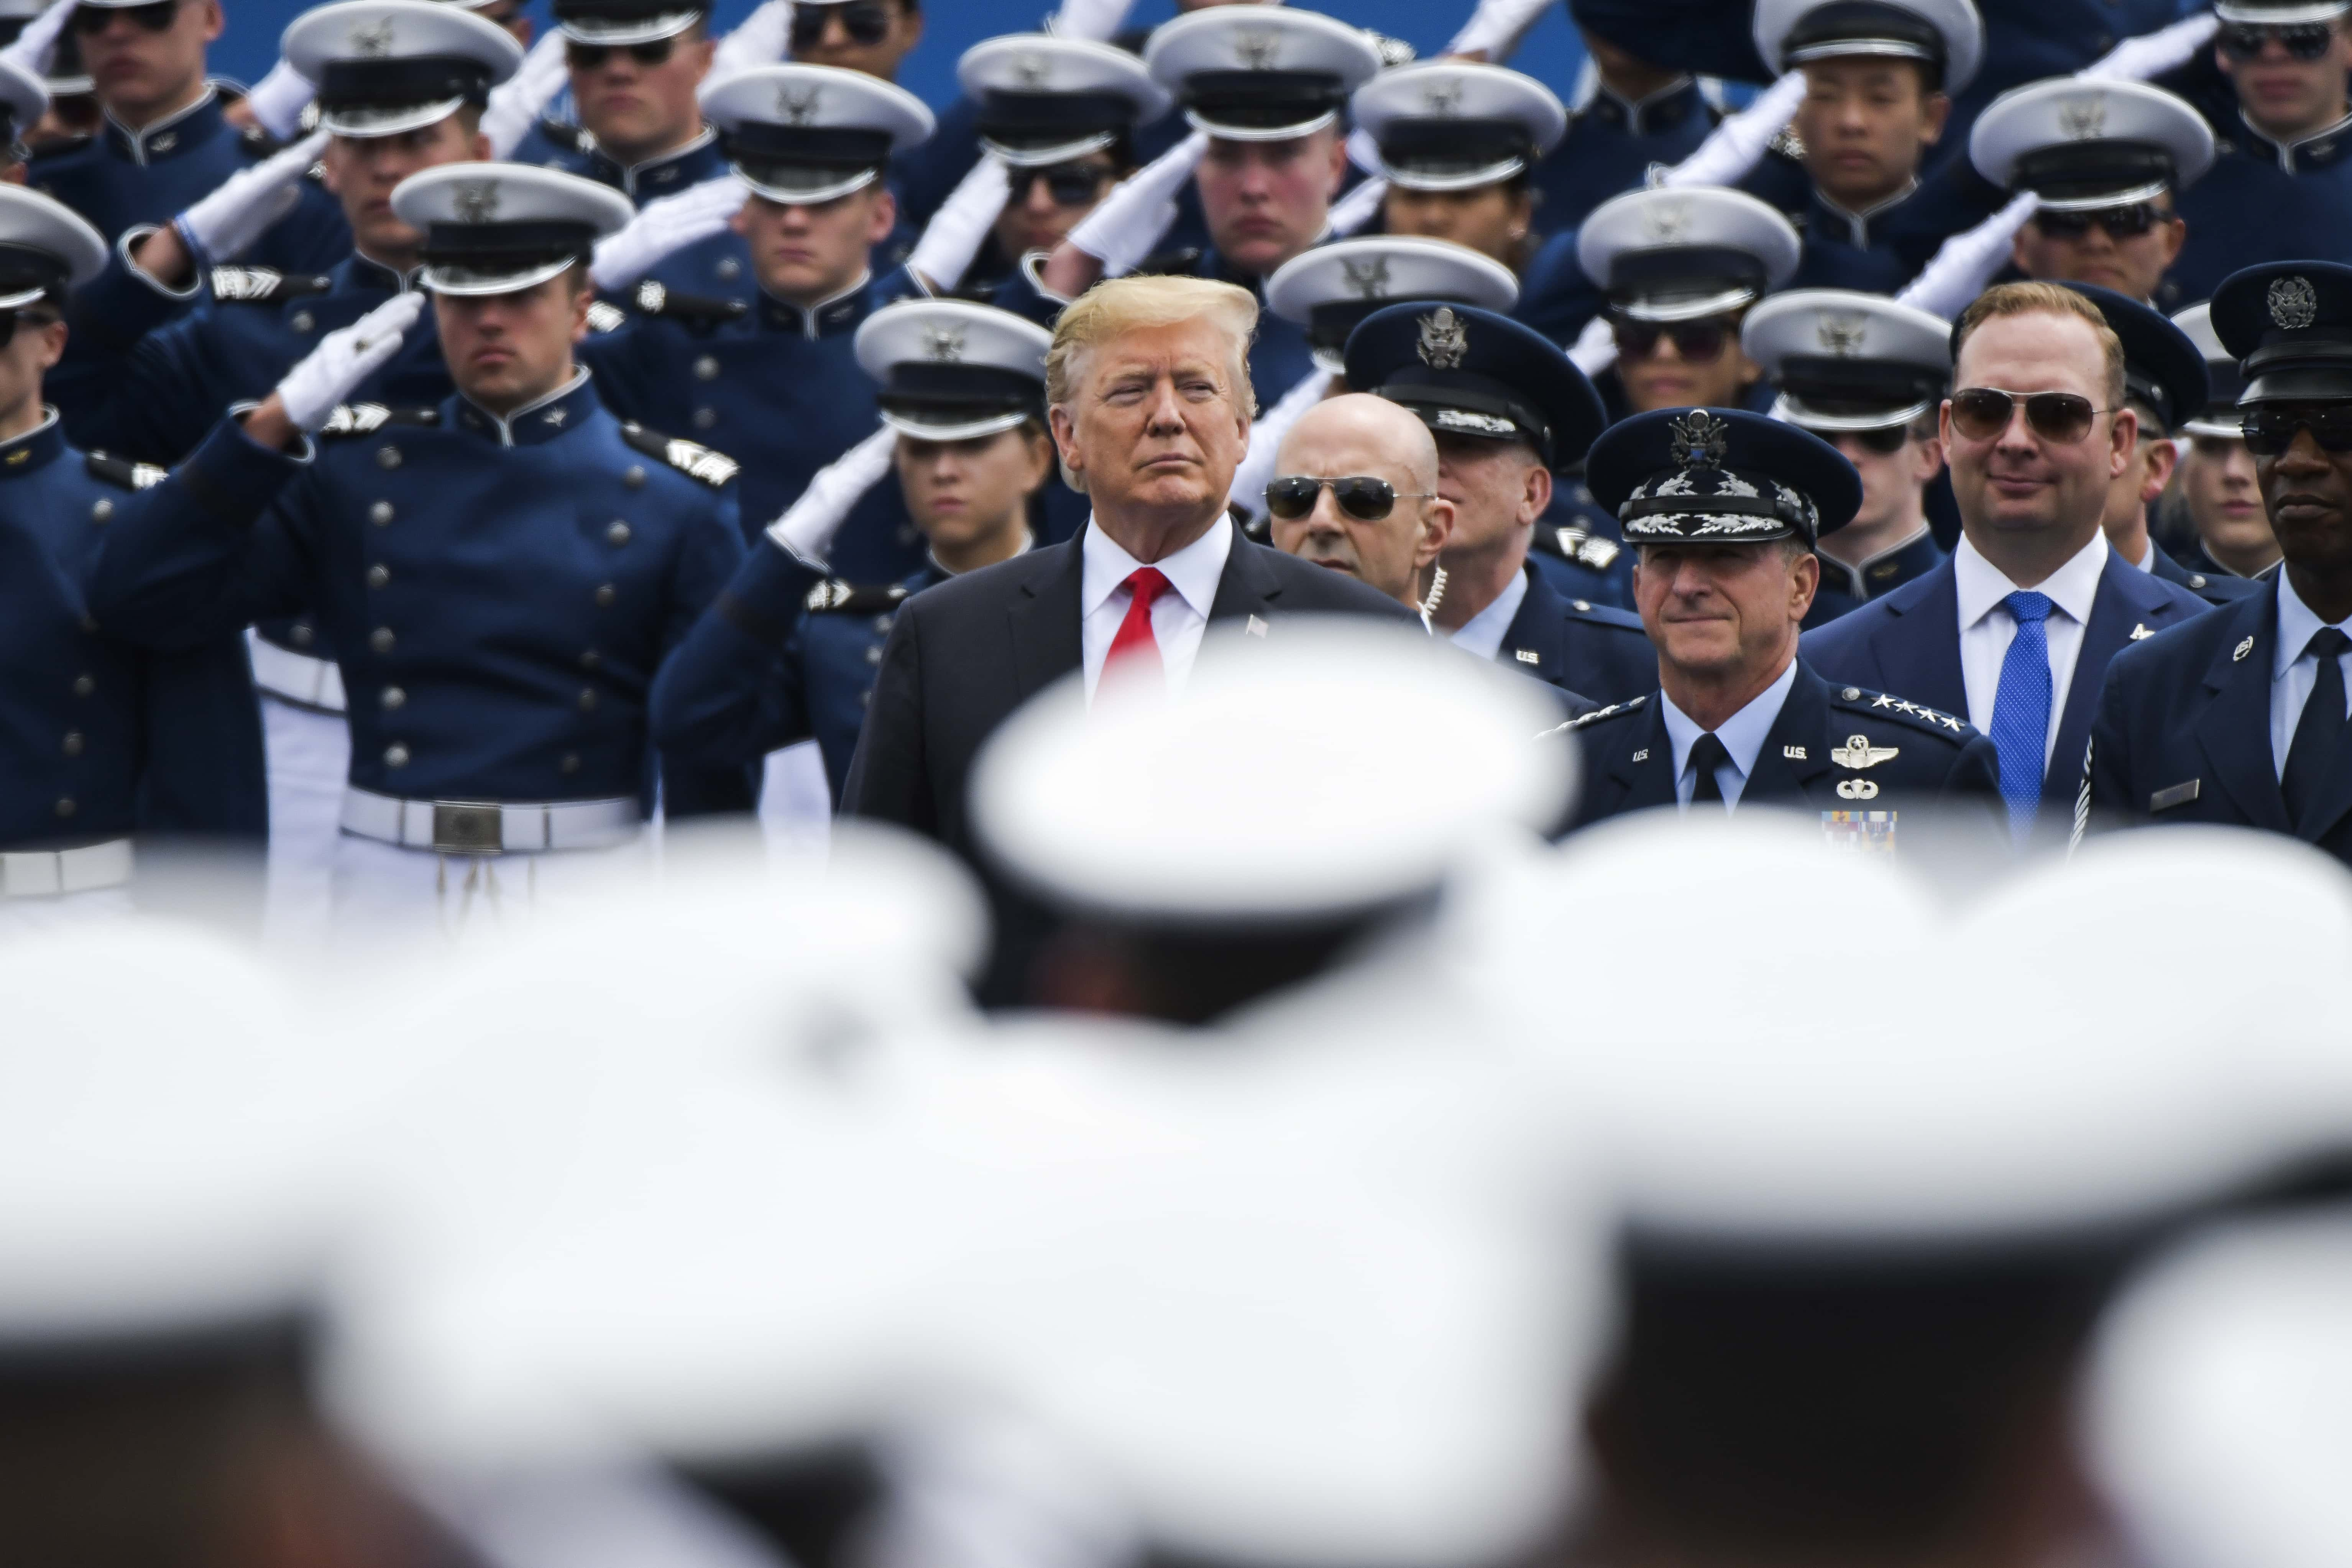 Trump Stays Back To Shake Hands With ALL 1,000 Graduating